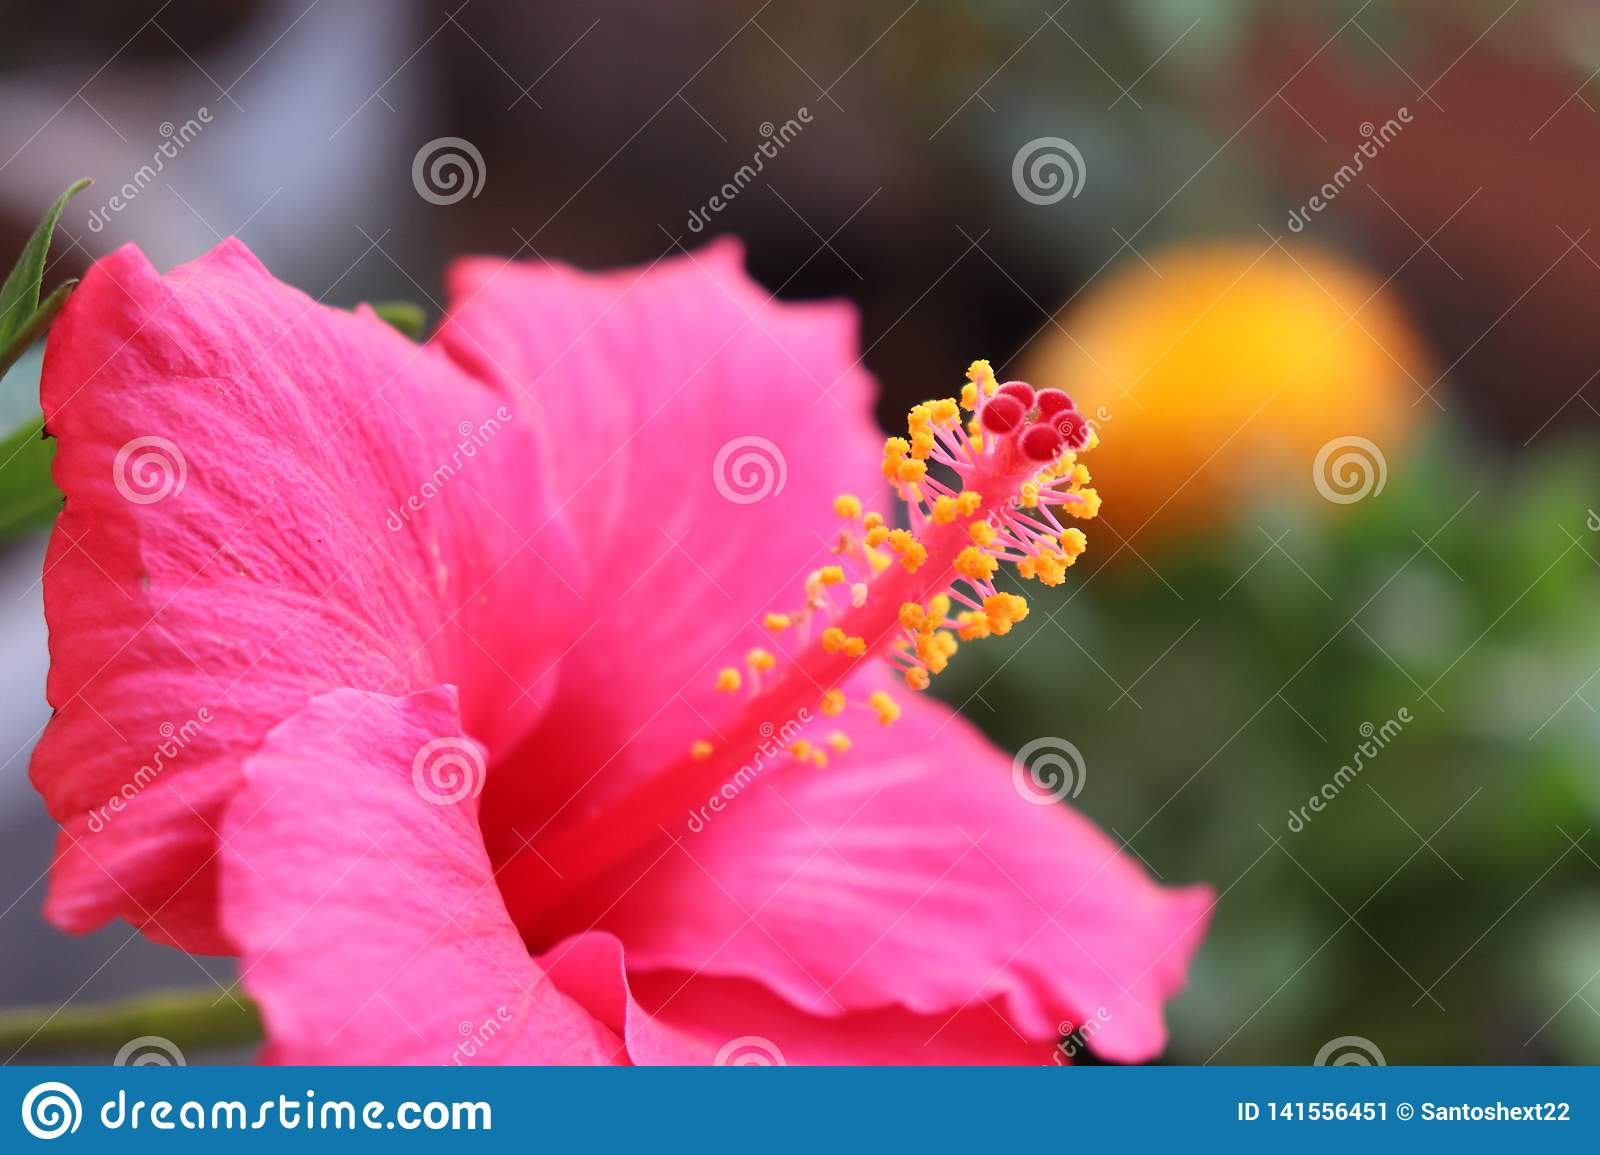 Natural Close Up Hibiscus Flower Pic Stock Image Image Of Small Different 141556451